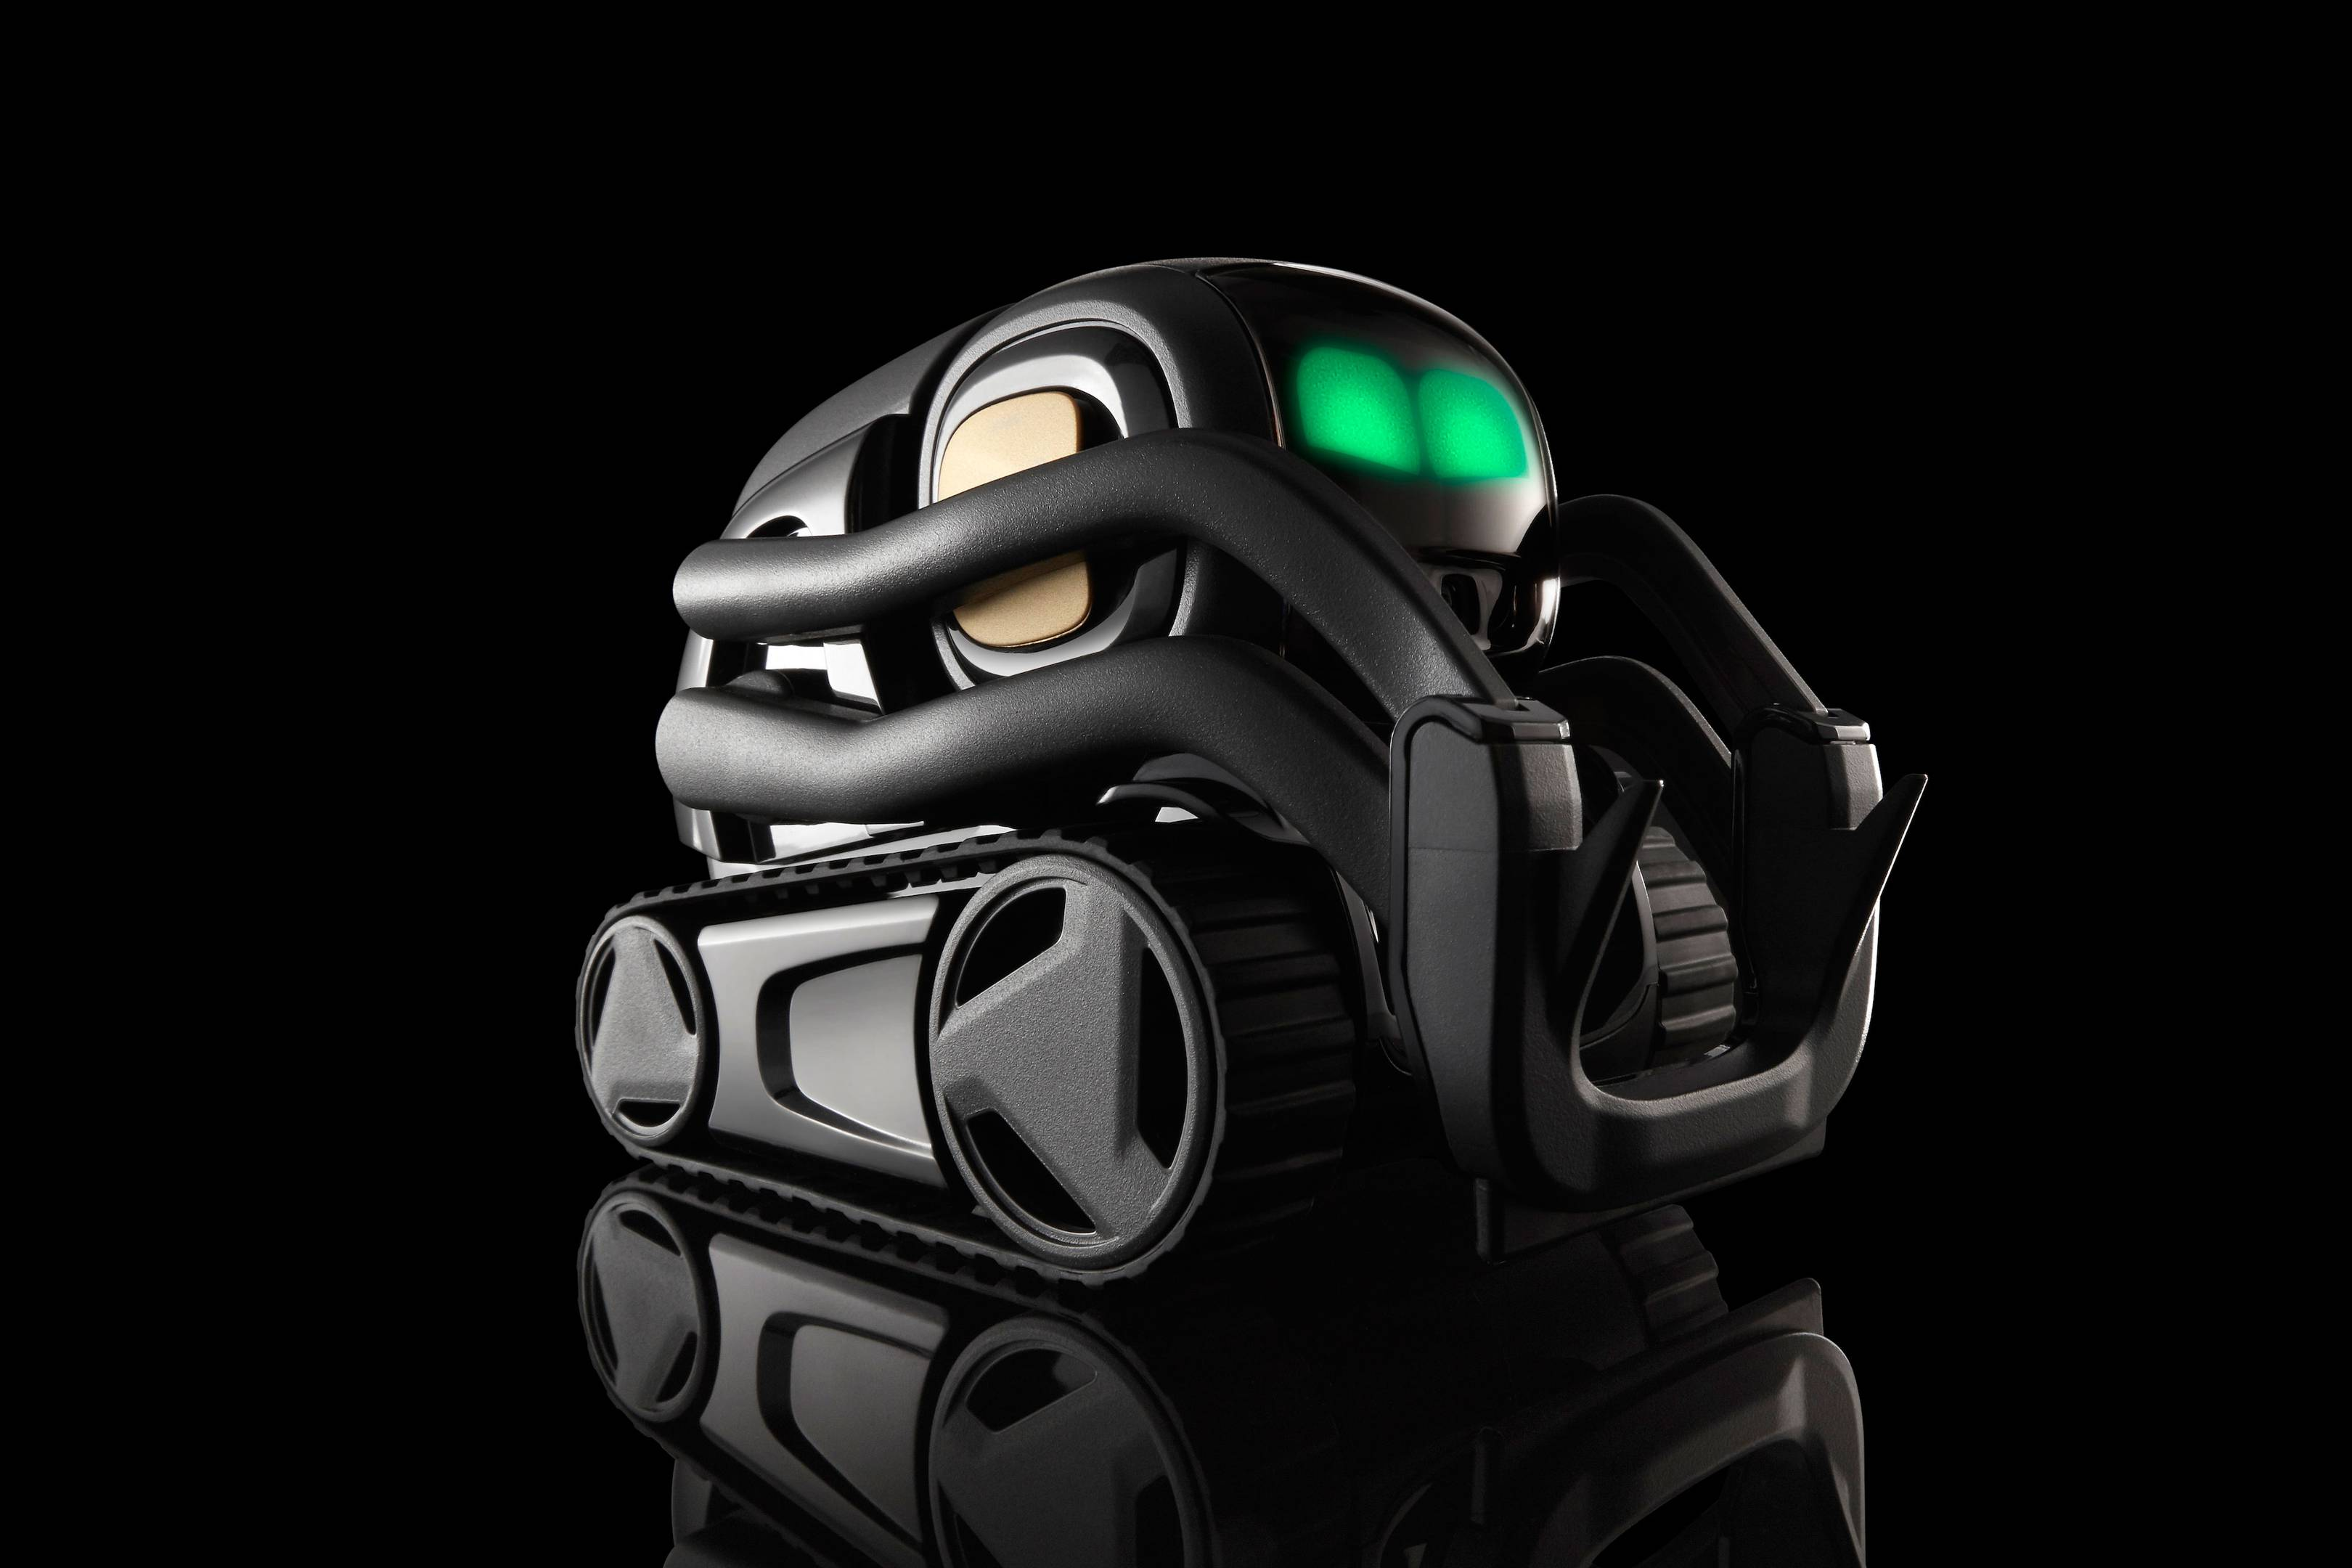 Anki's new Vector home robot is an Alexa competitor on